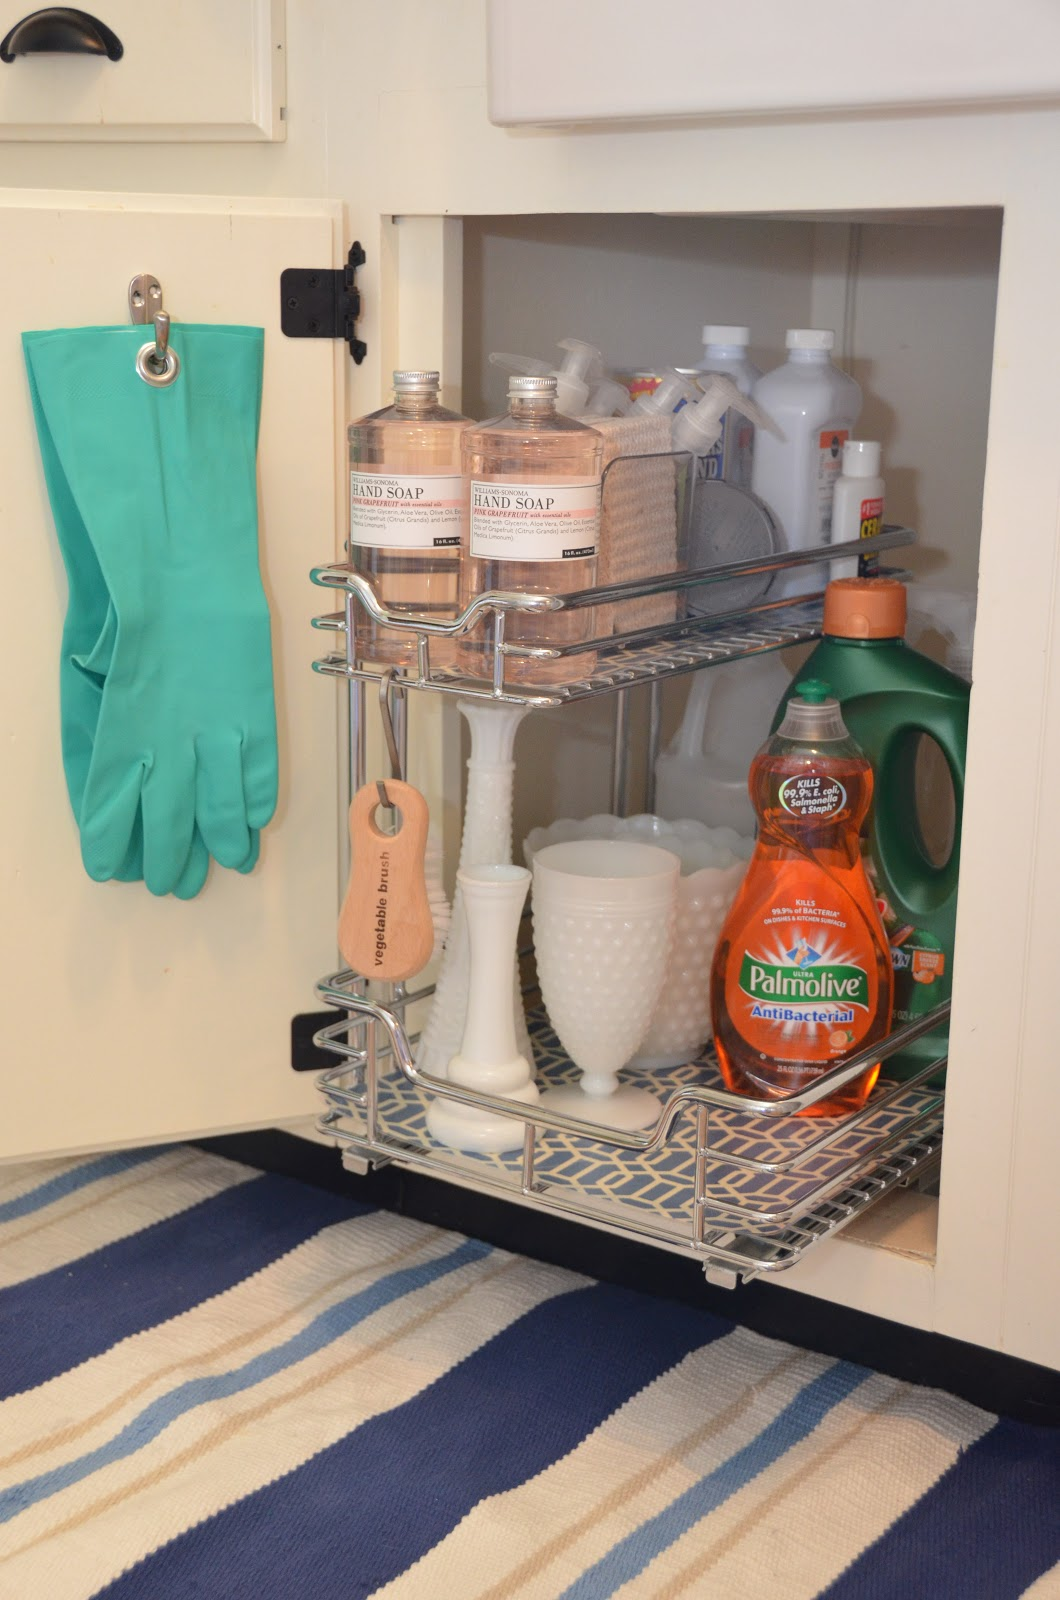 16 renovations under your sink that will wow for Under counter bathroom storage ideas